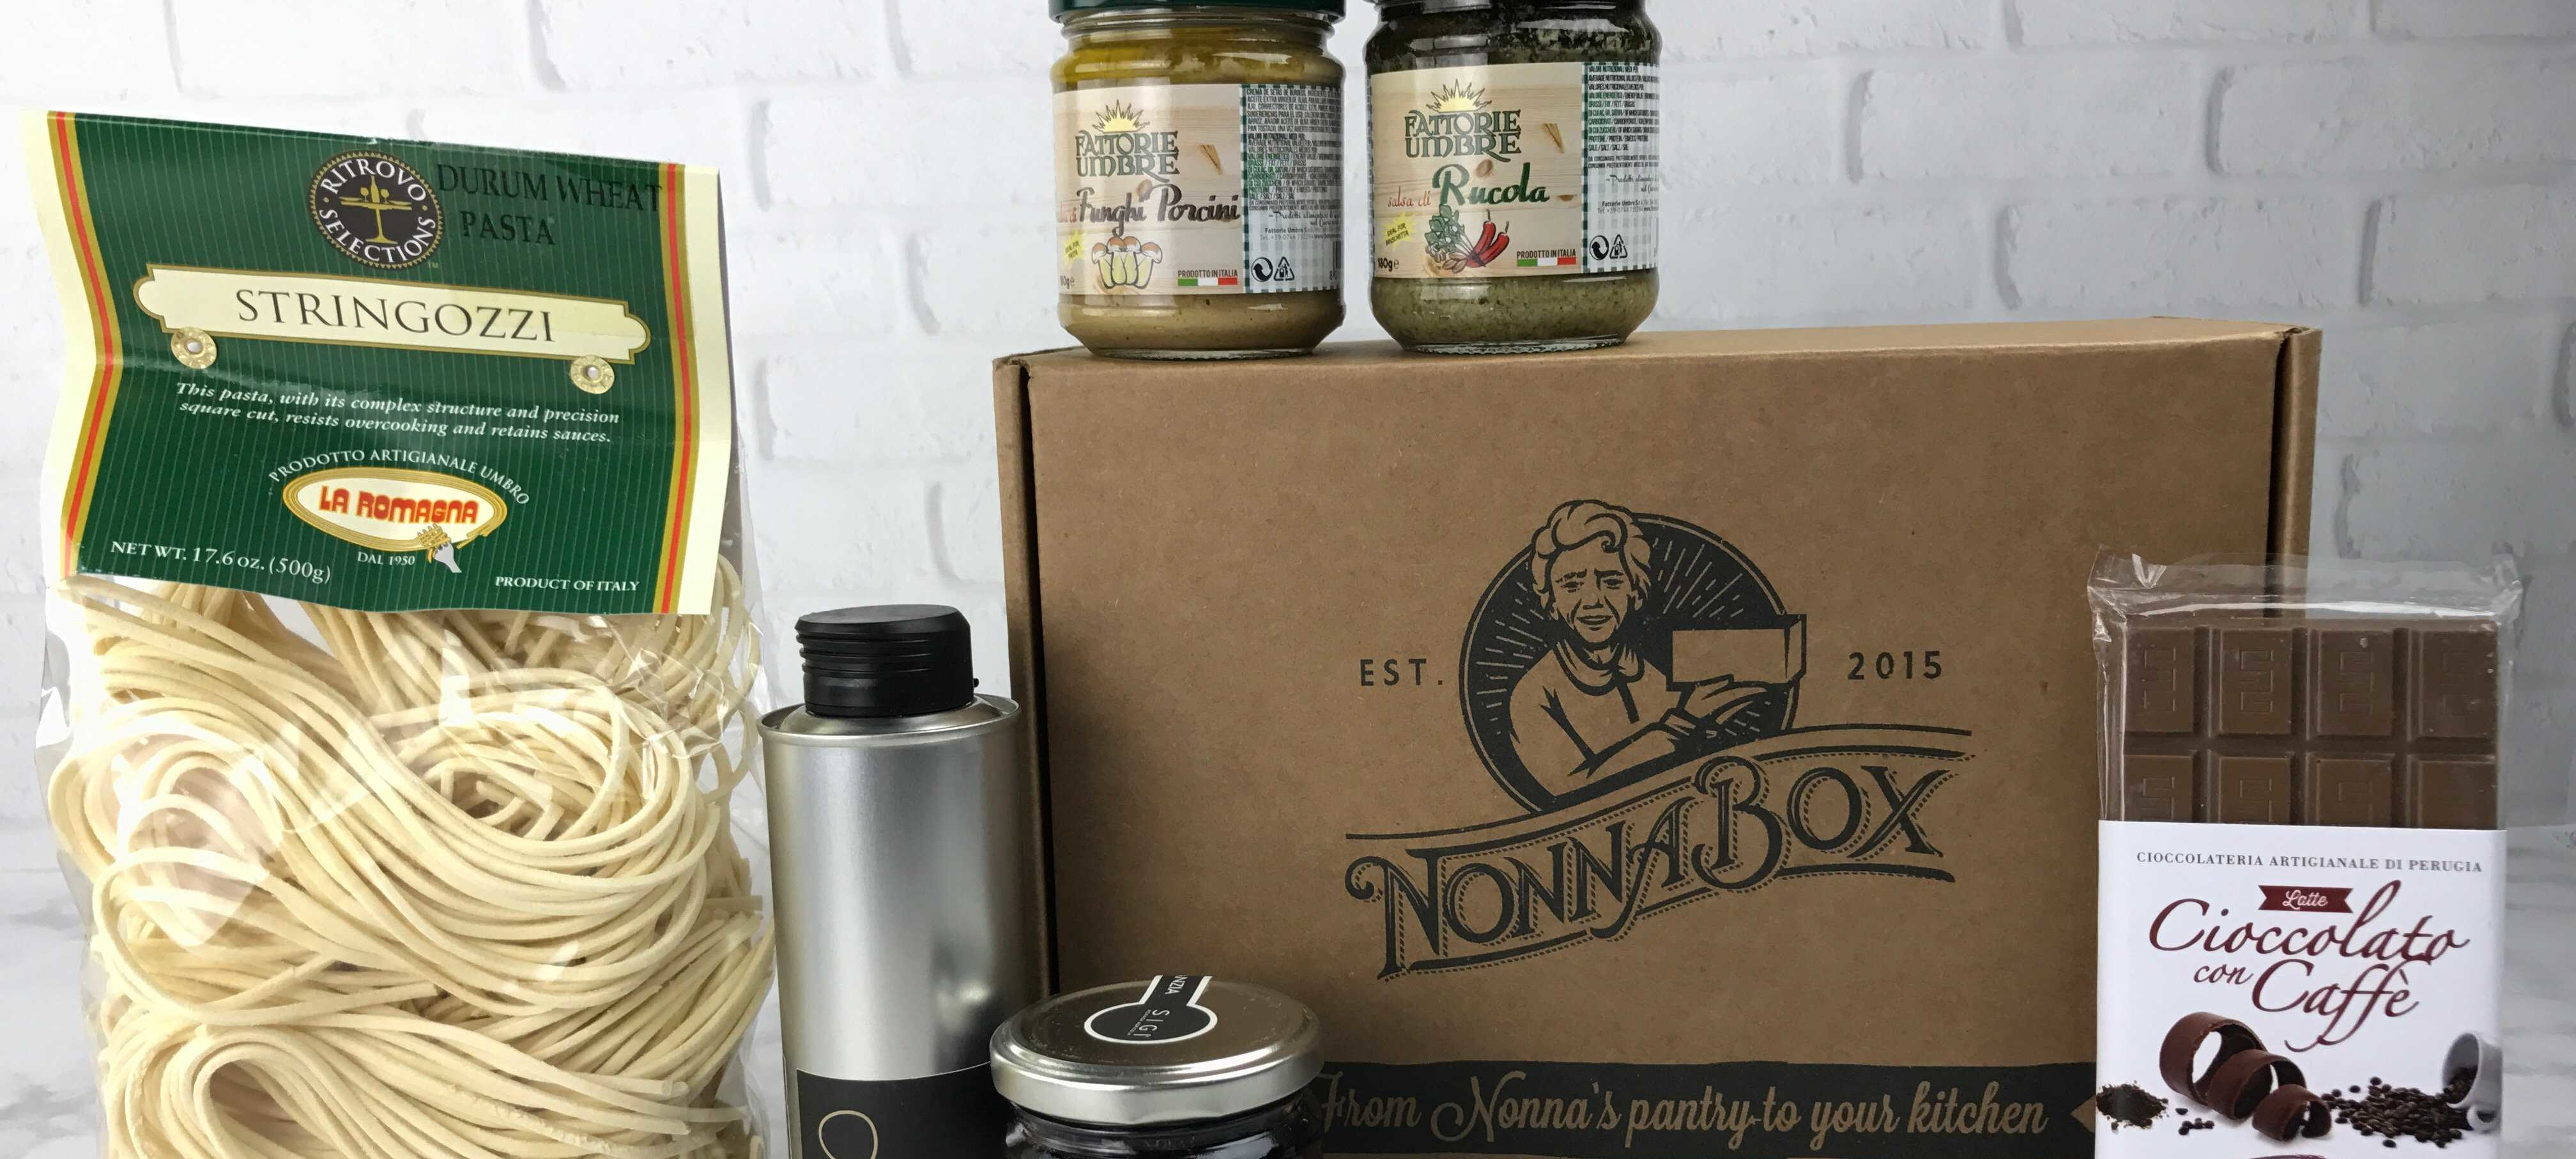 Nonna Box January 2017 Subscription Box Review + Coupon